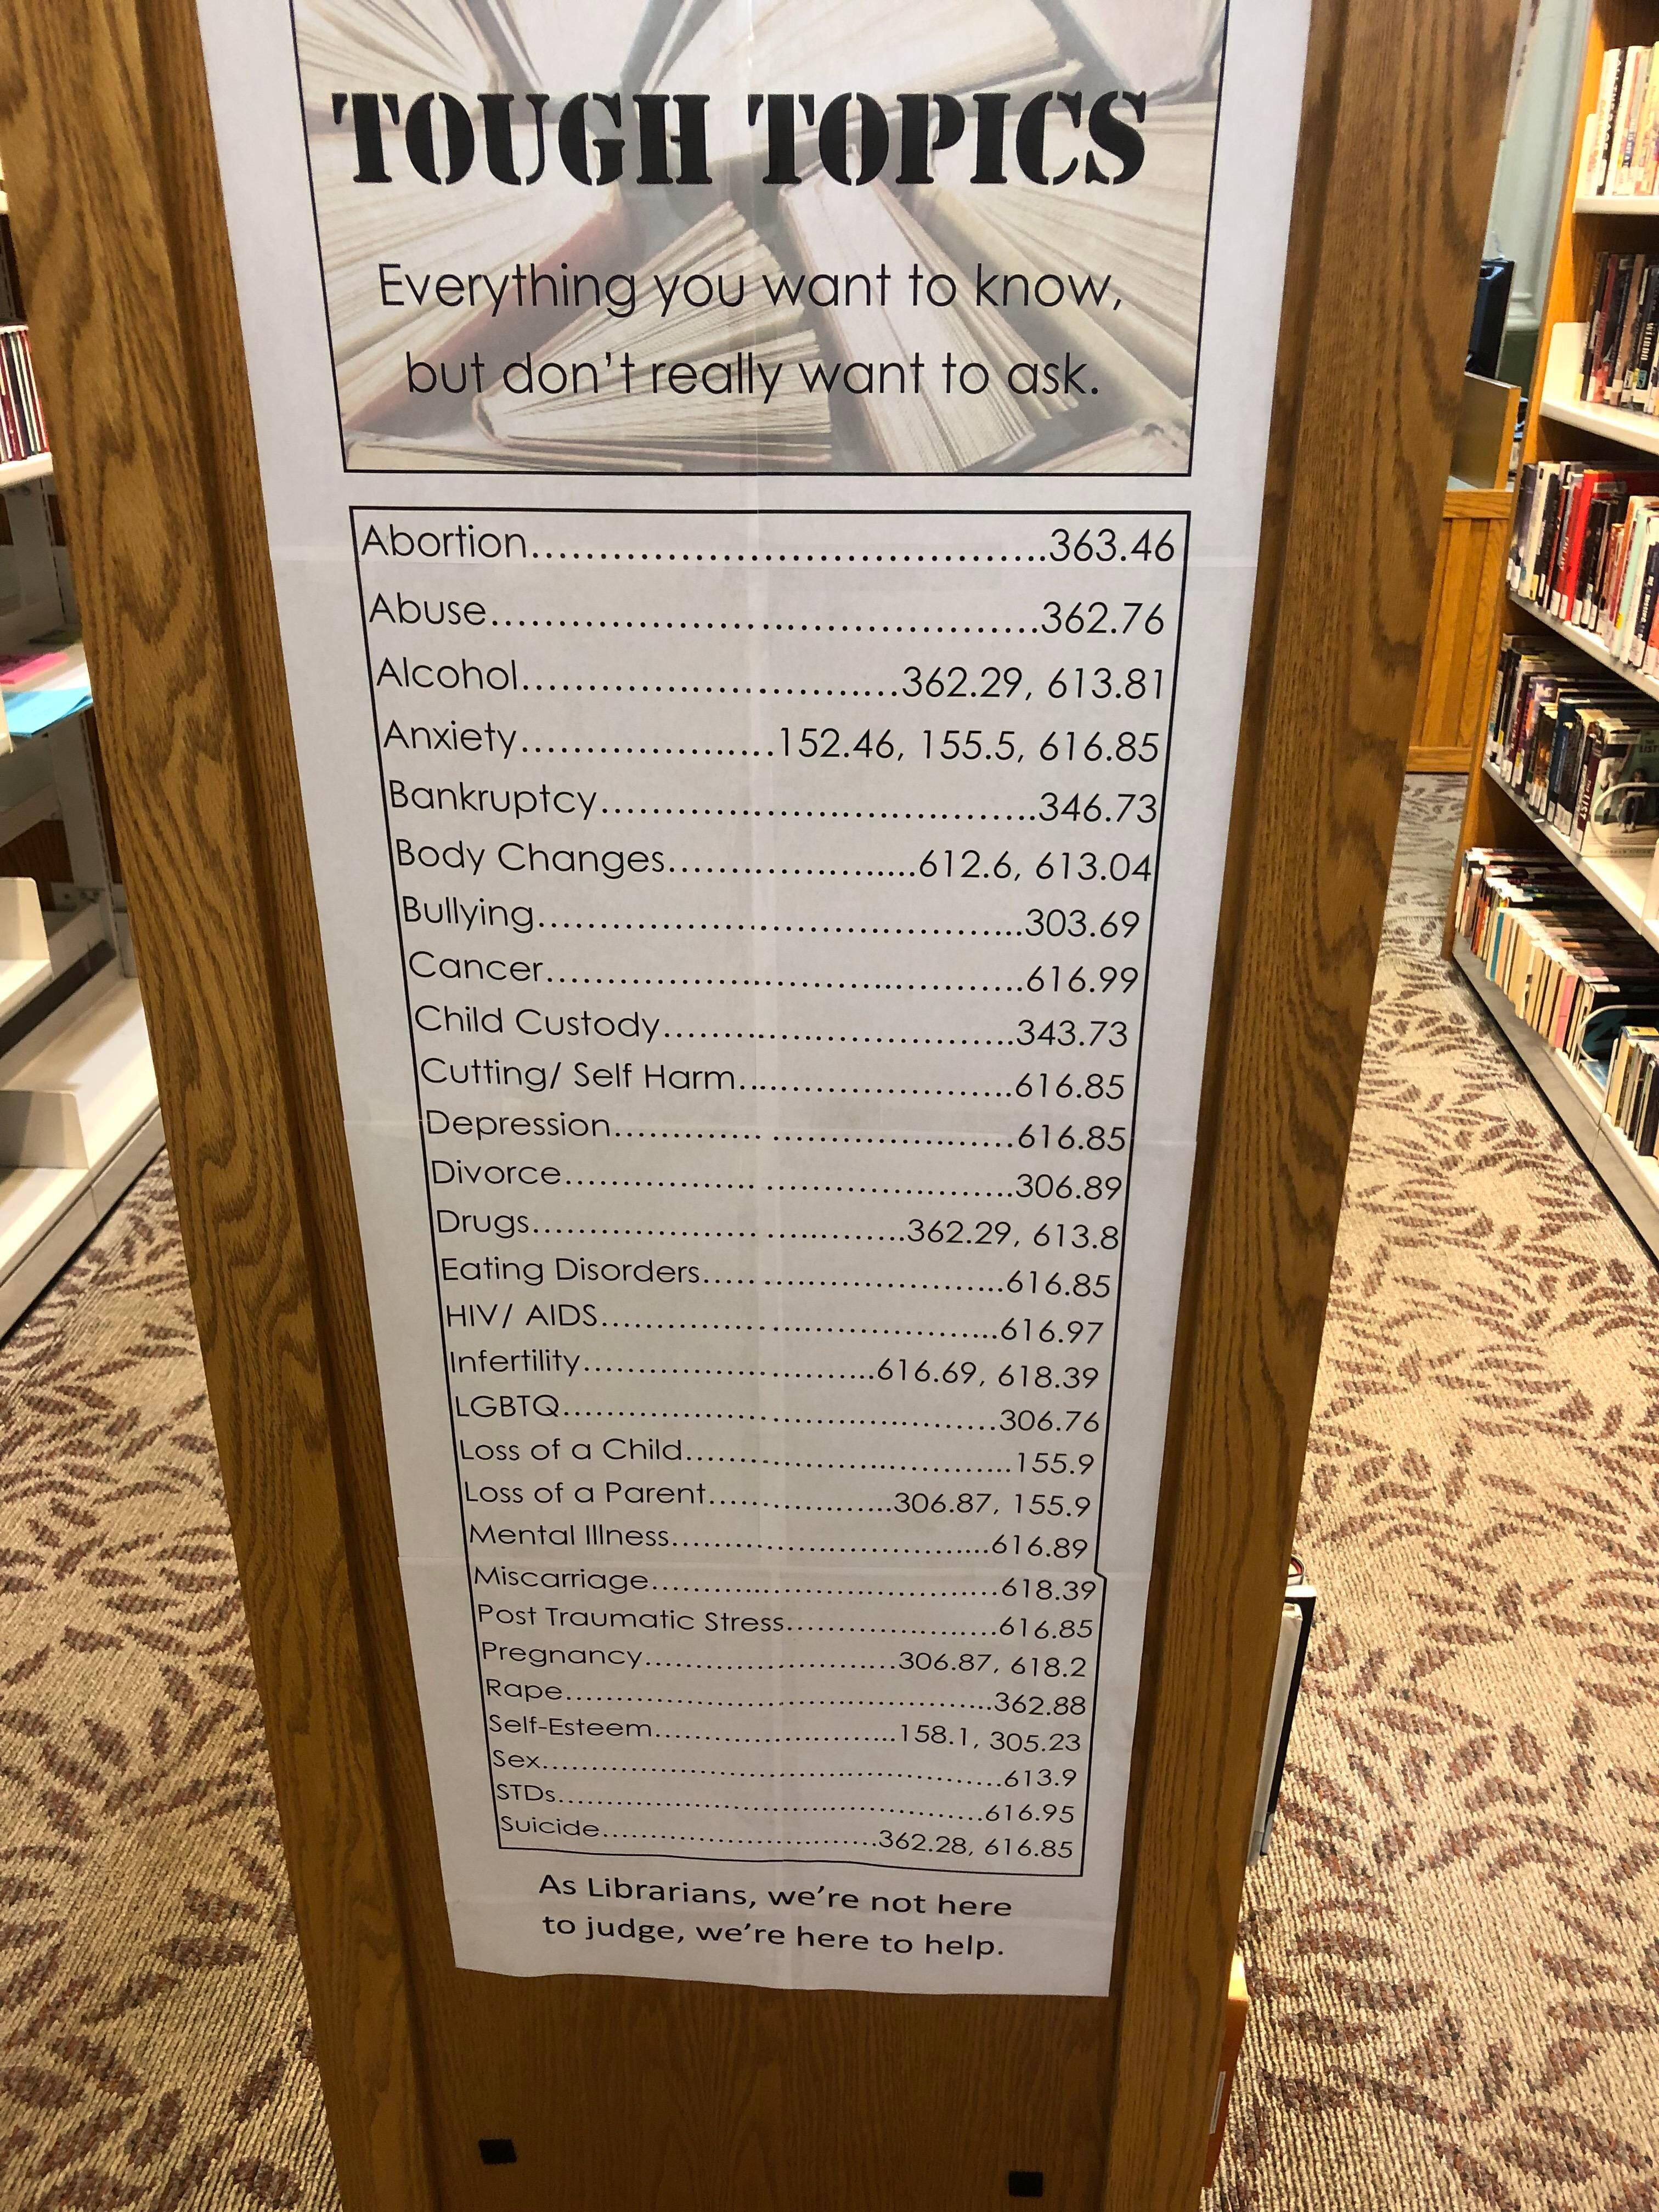 This Library Hung A Dewey Decimal Reference Sign For